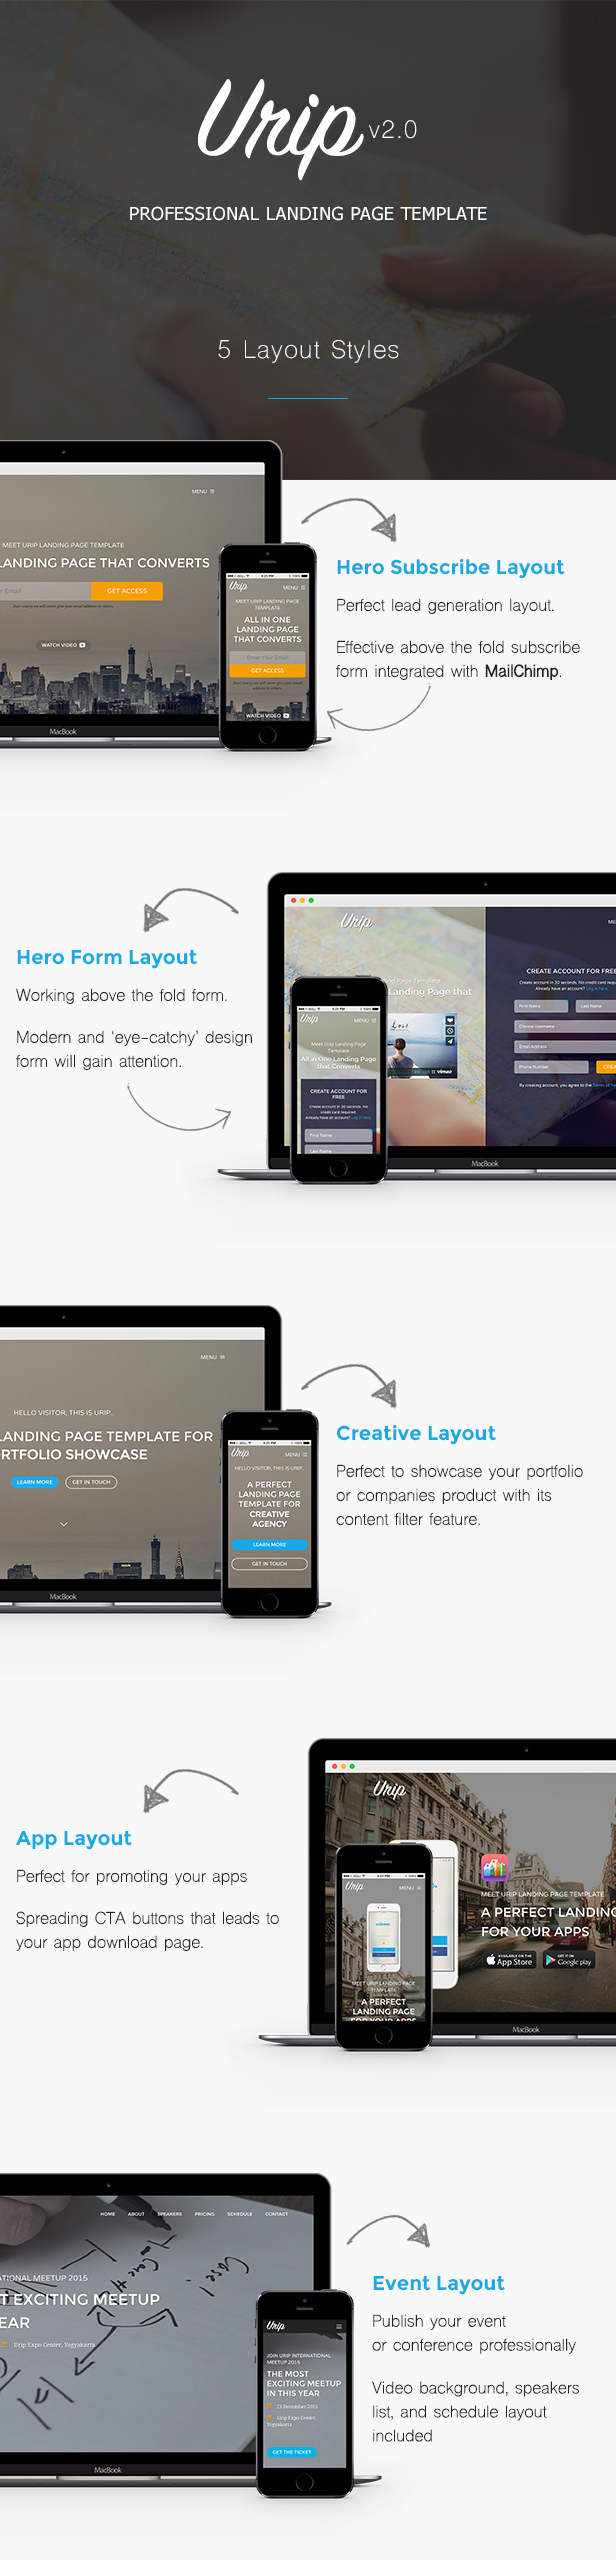 Urip - Professional Landing Page With HTML Builder 7